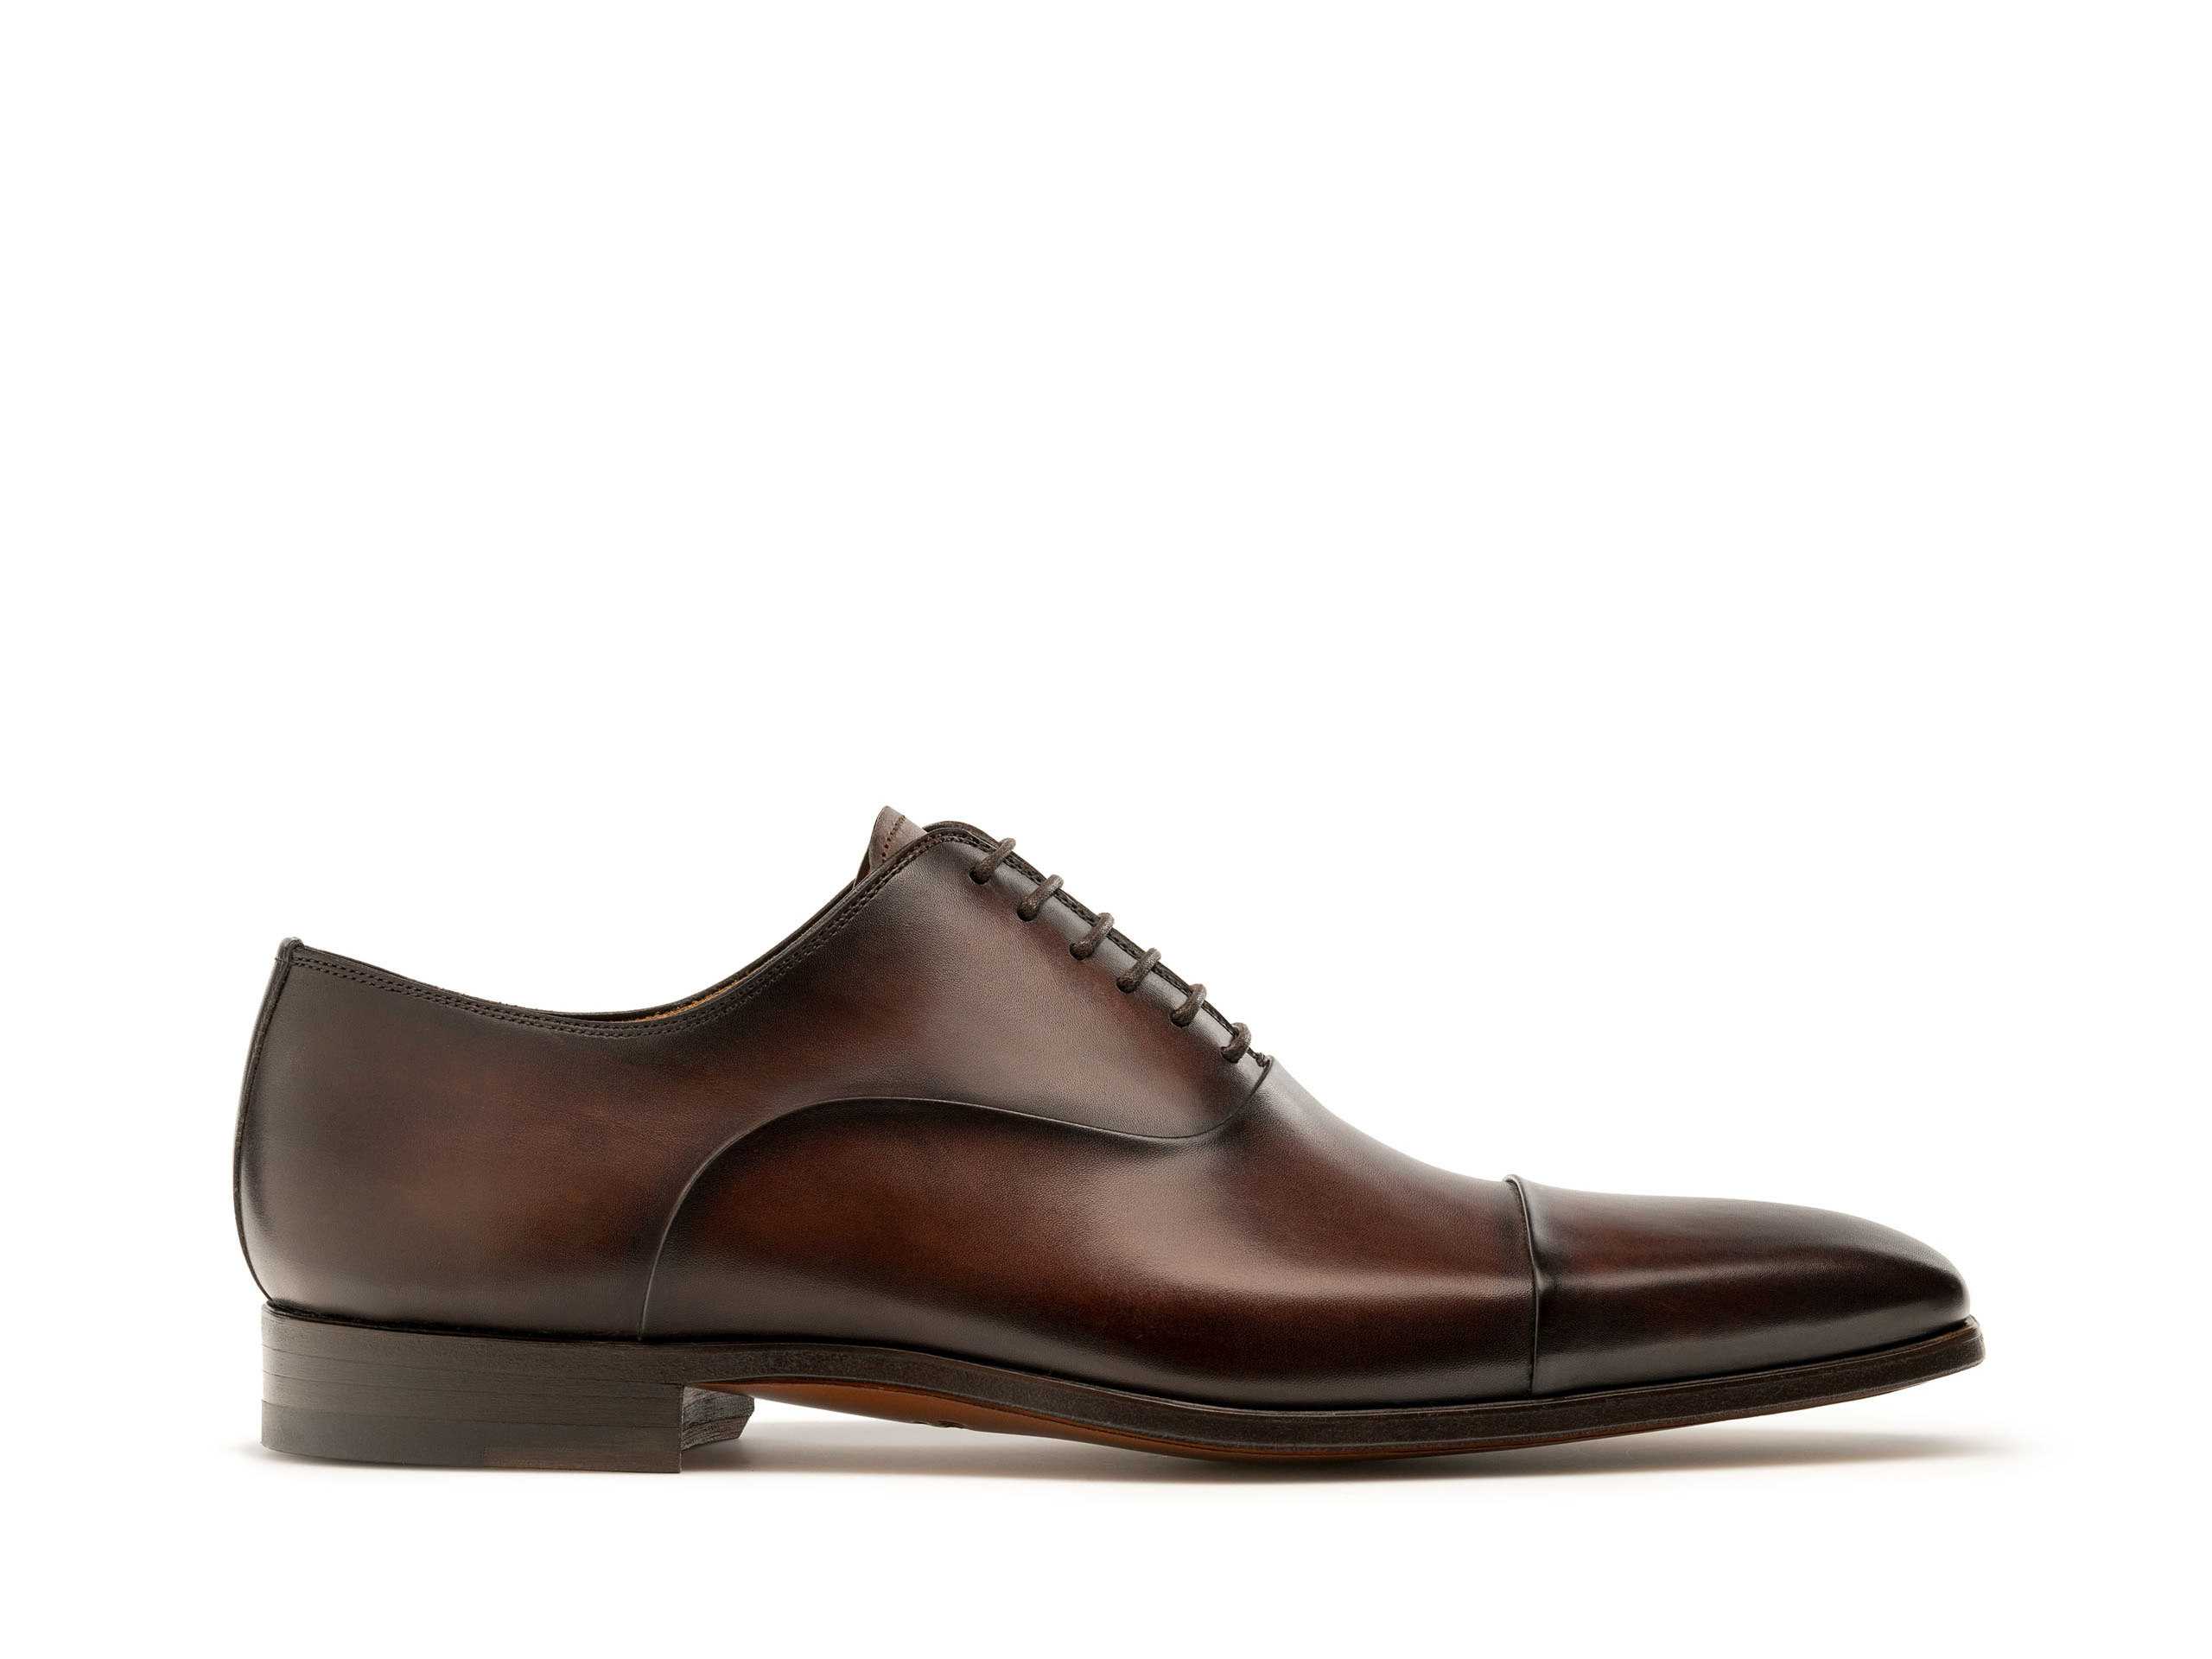 Brown hand painted calfskin oxford shoes for men - Magnanni